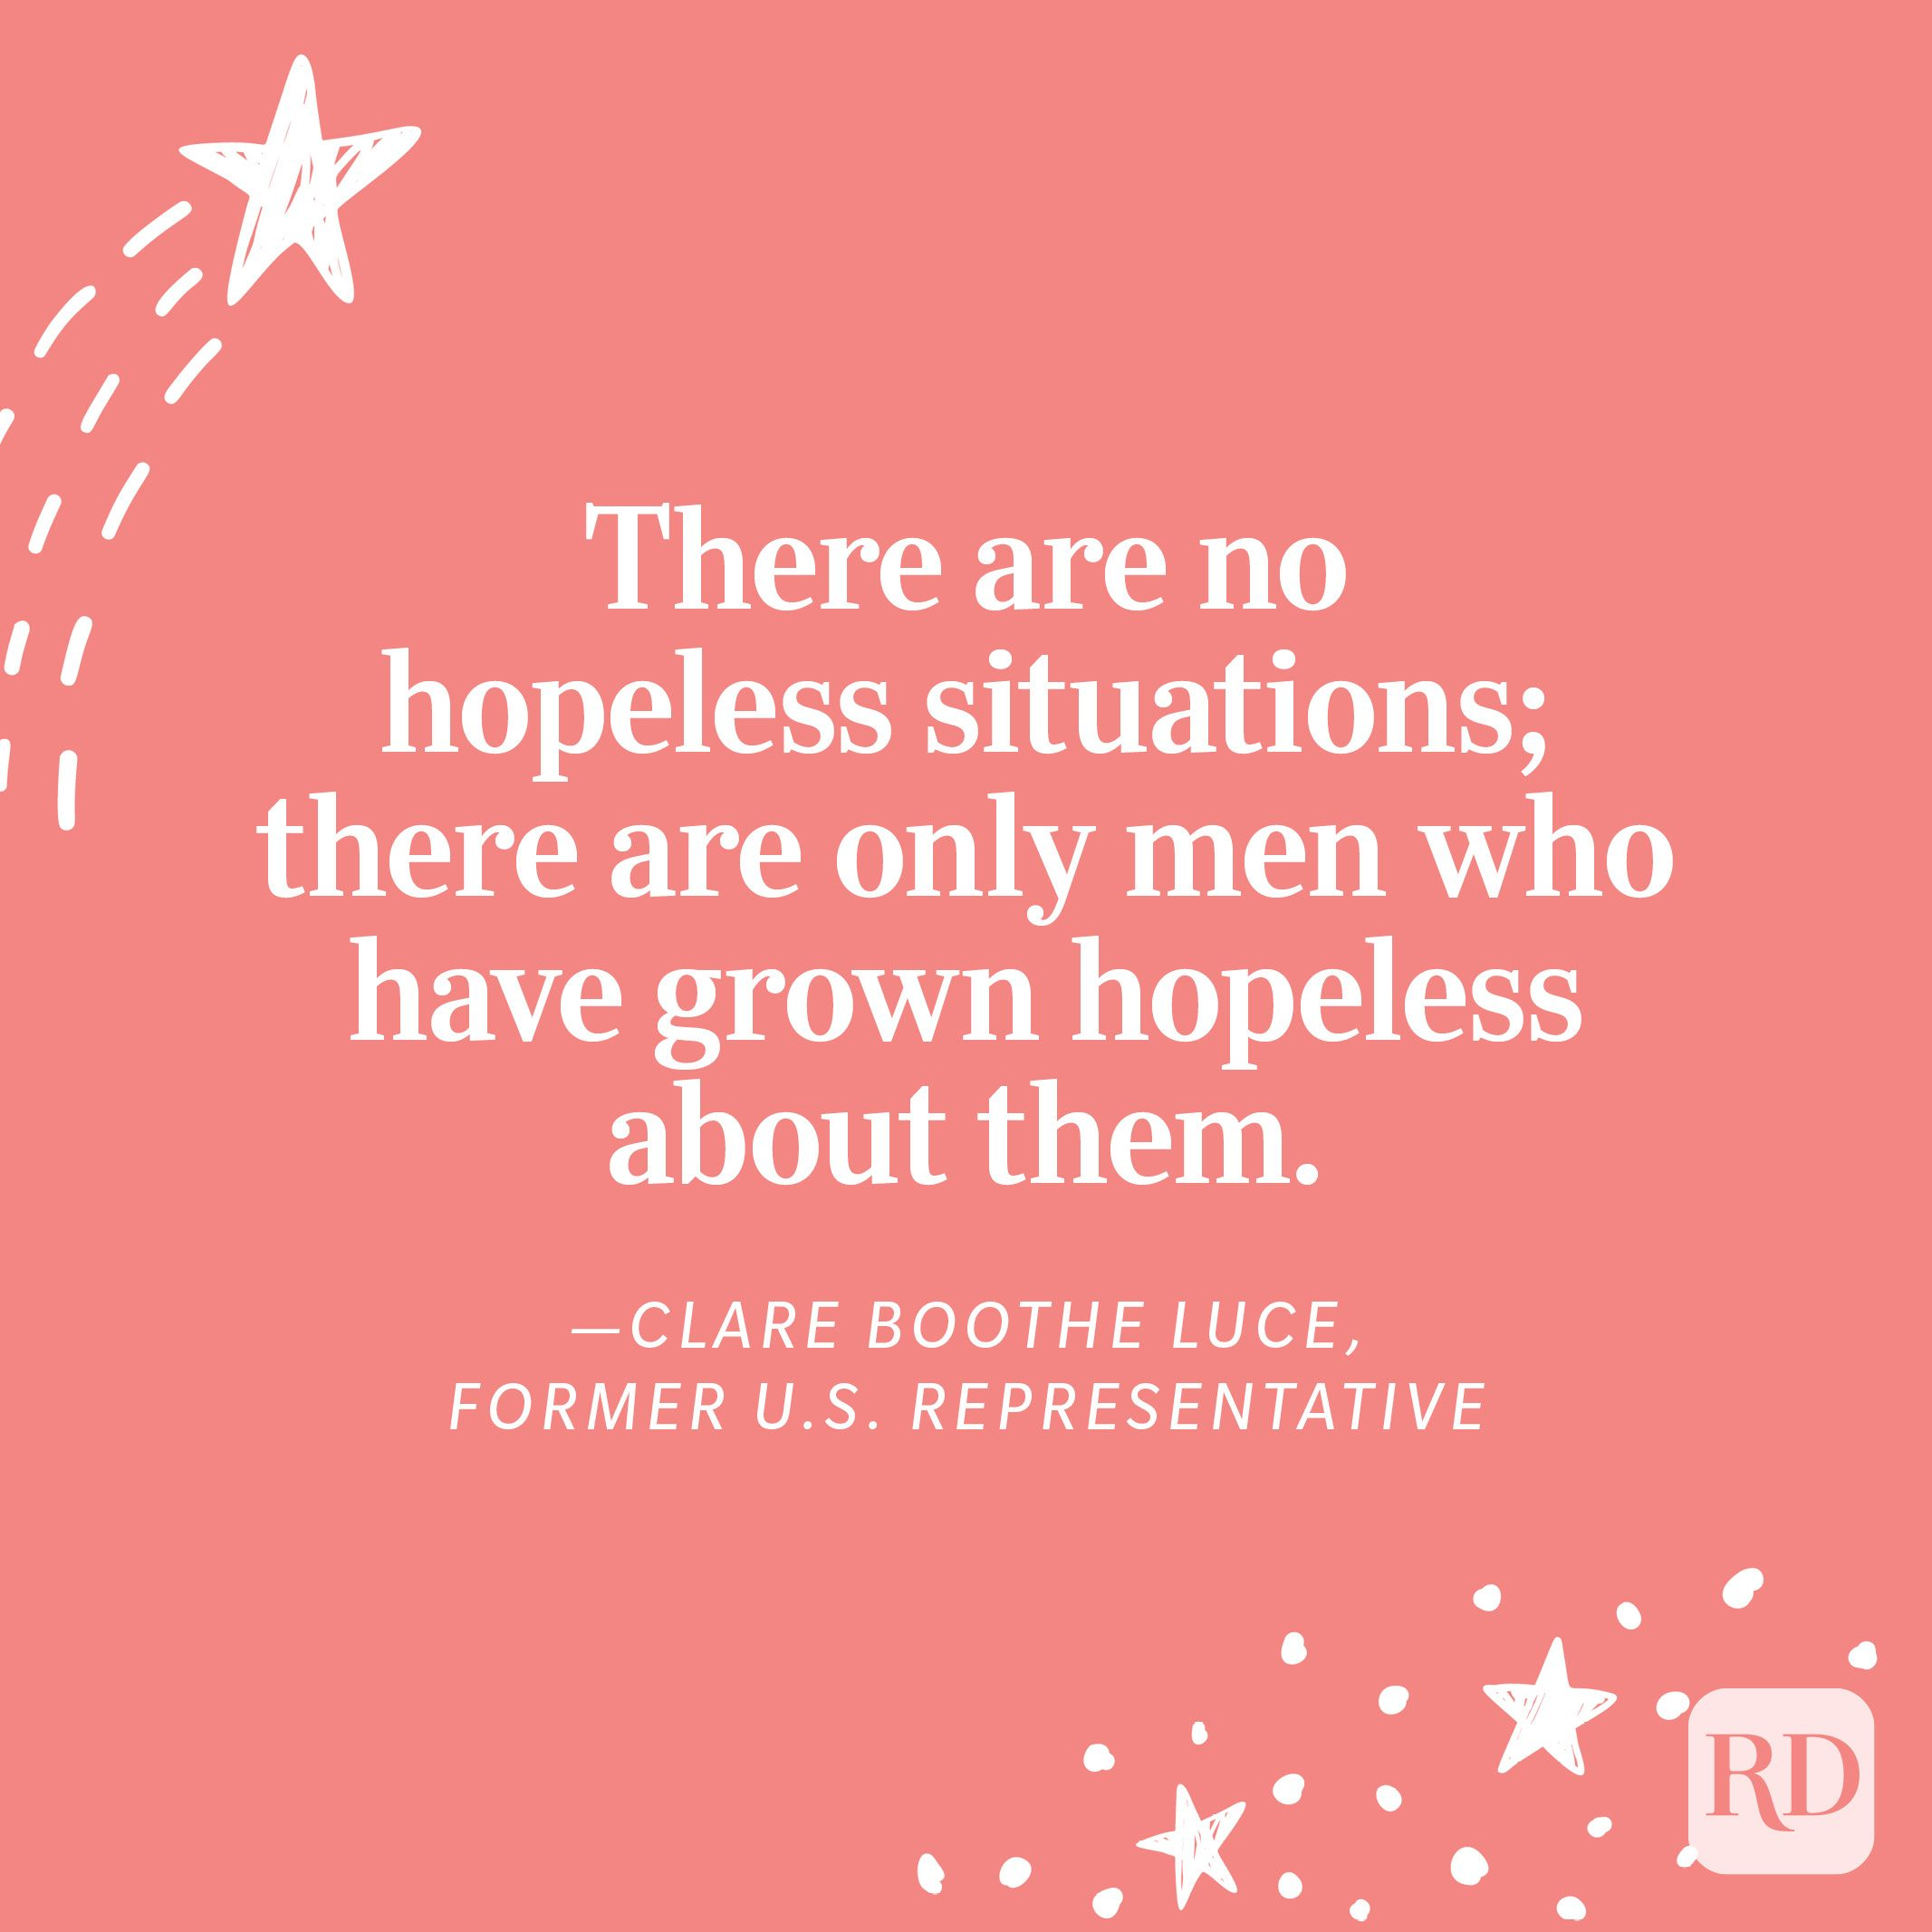 """""""There are no hopeless situations; there are only men who have grown hopeless about them.""""—Clare Boothe Luce, former U.S. representative"""